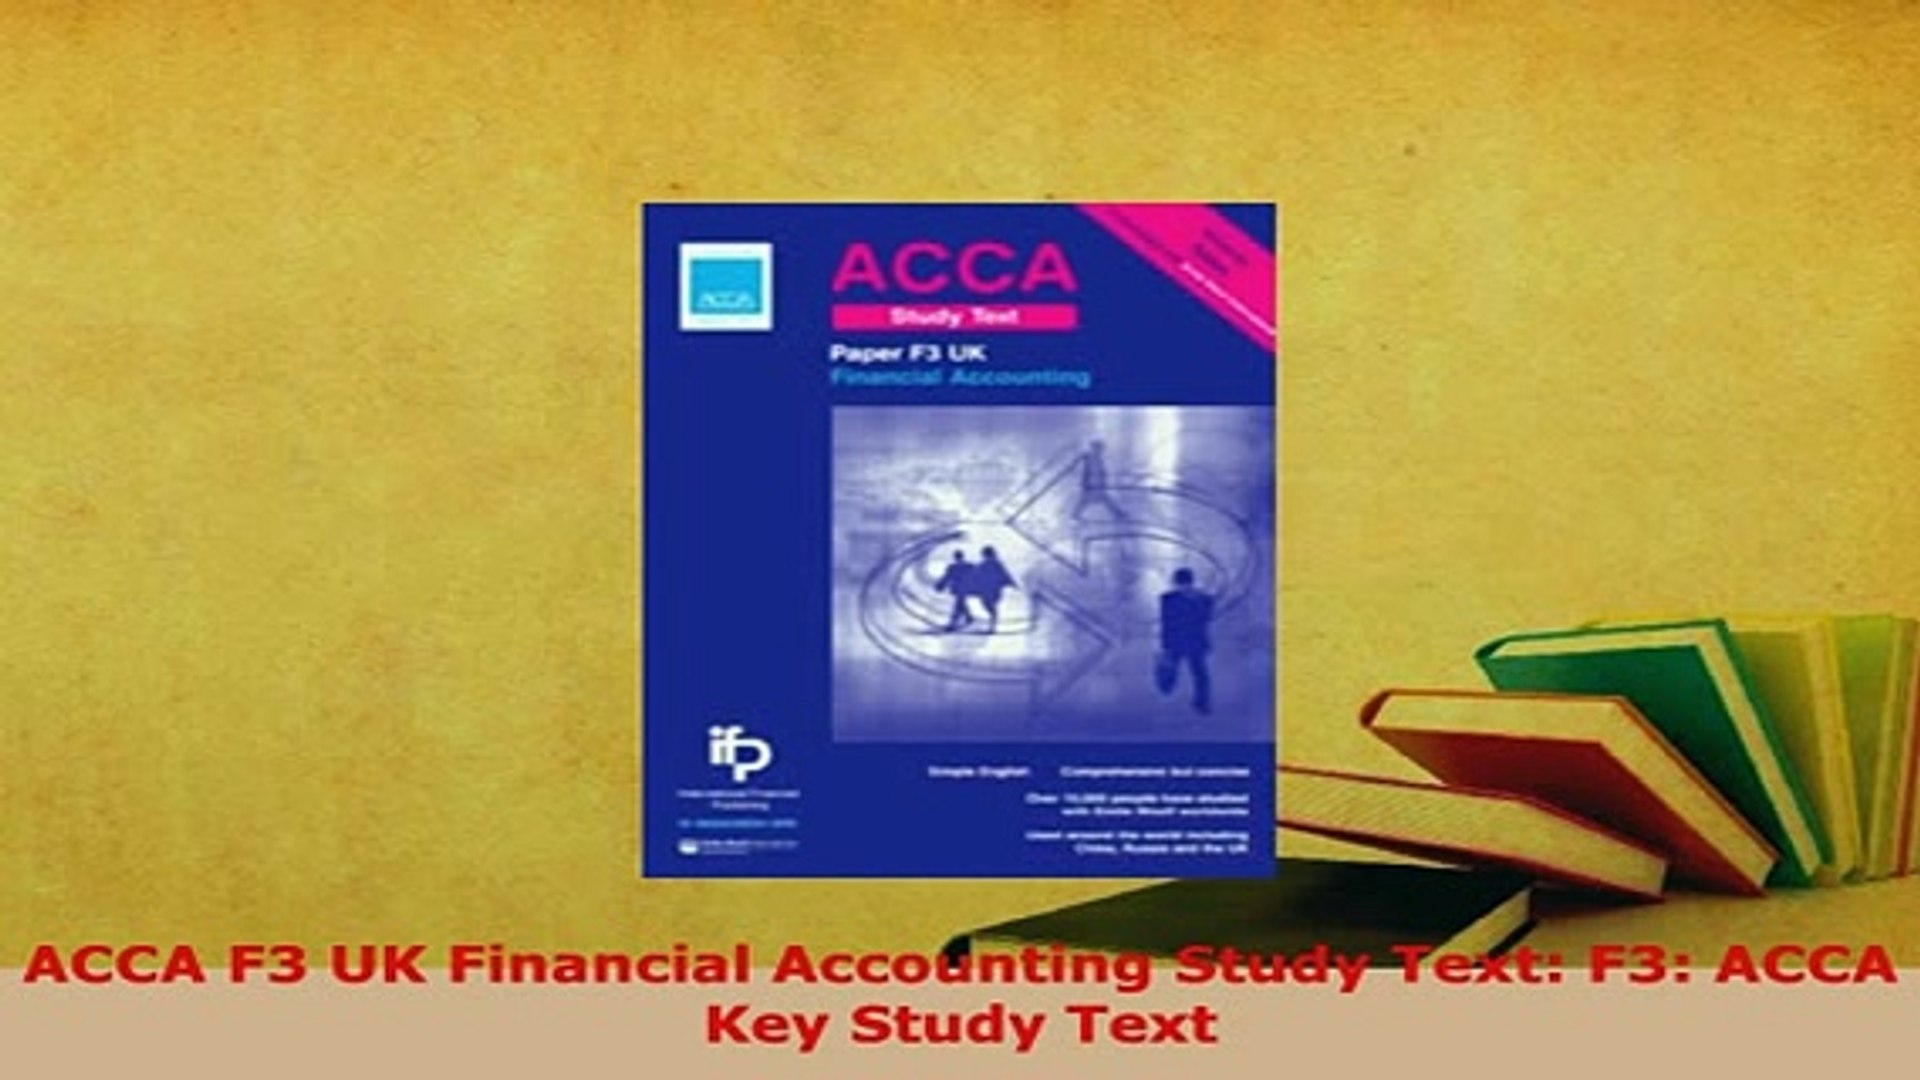 Download ACCA F3 UK Financial Accounting Study Text F3 ACCA Key Study Text  Free Books